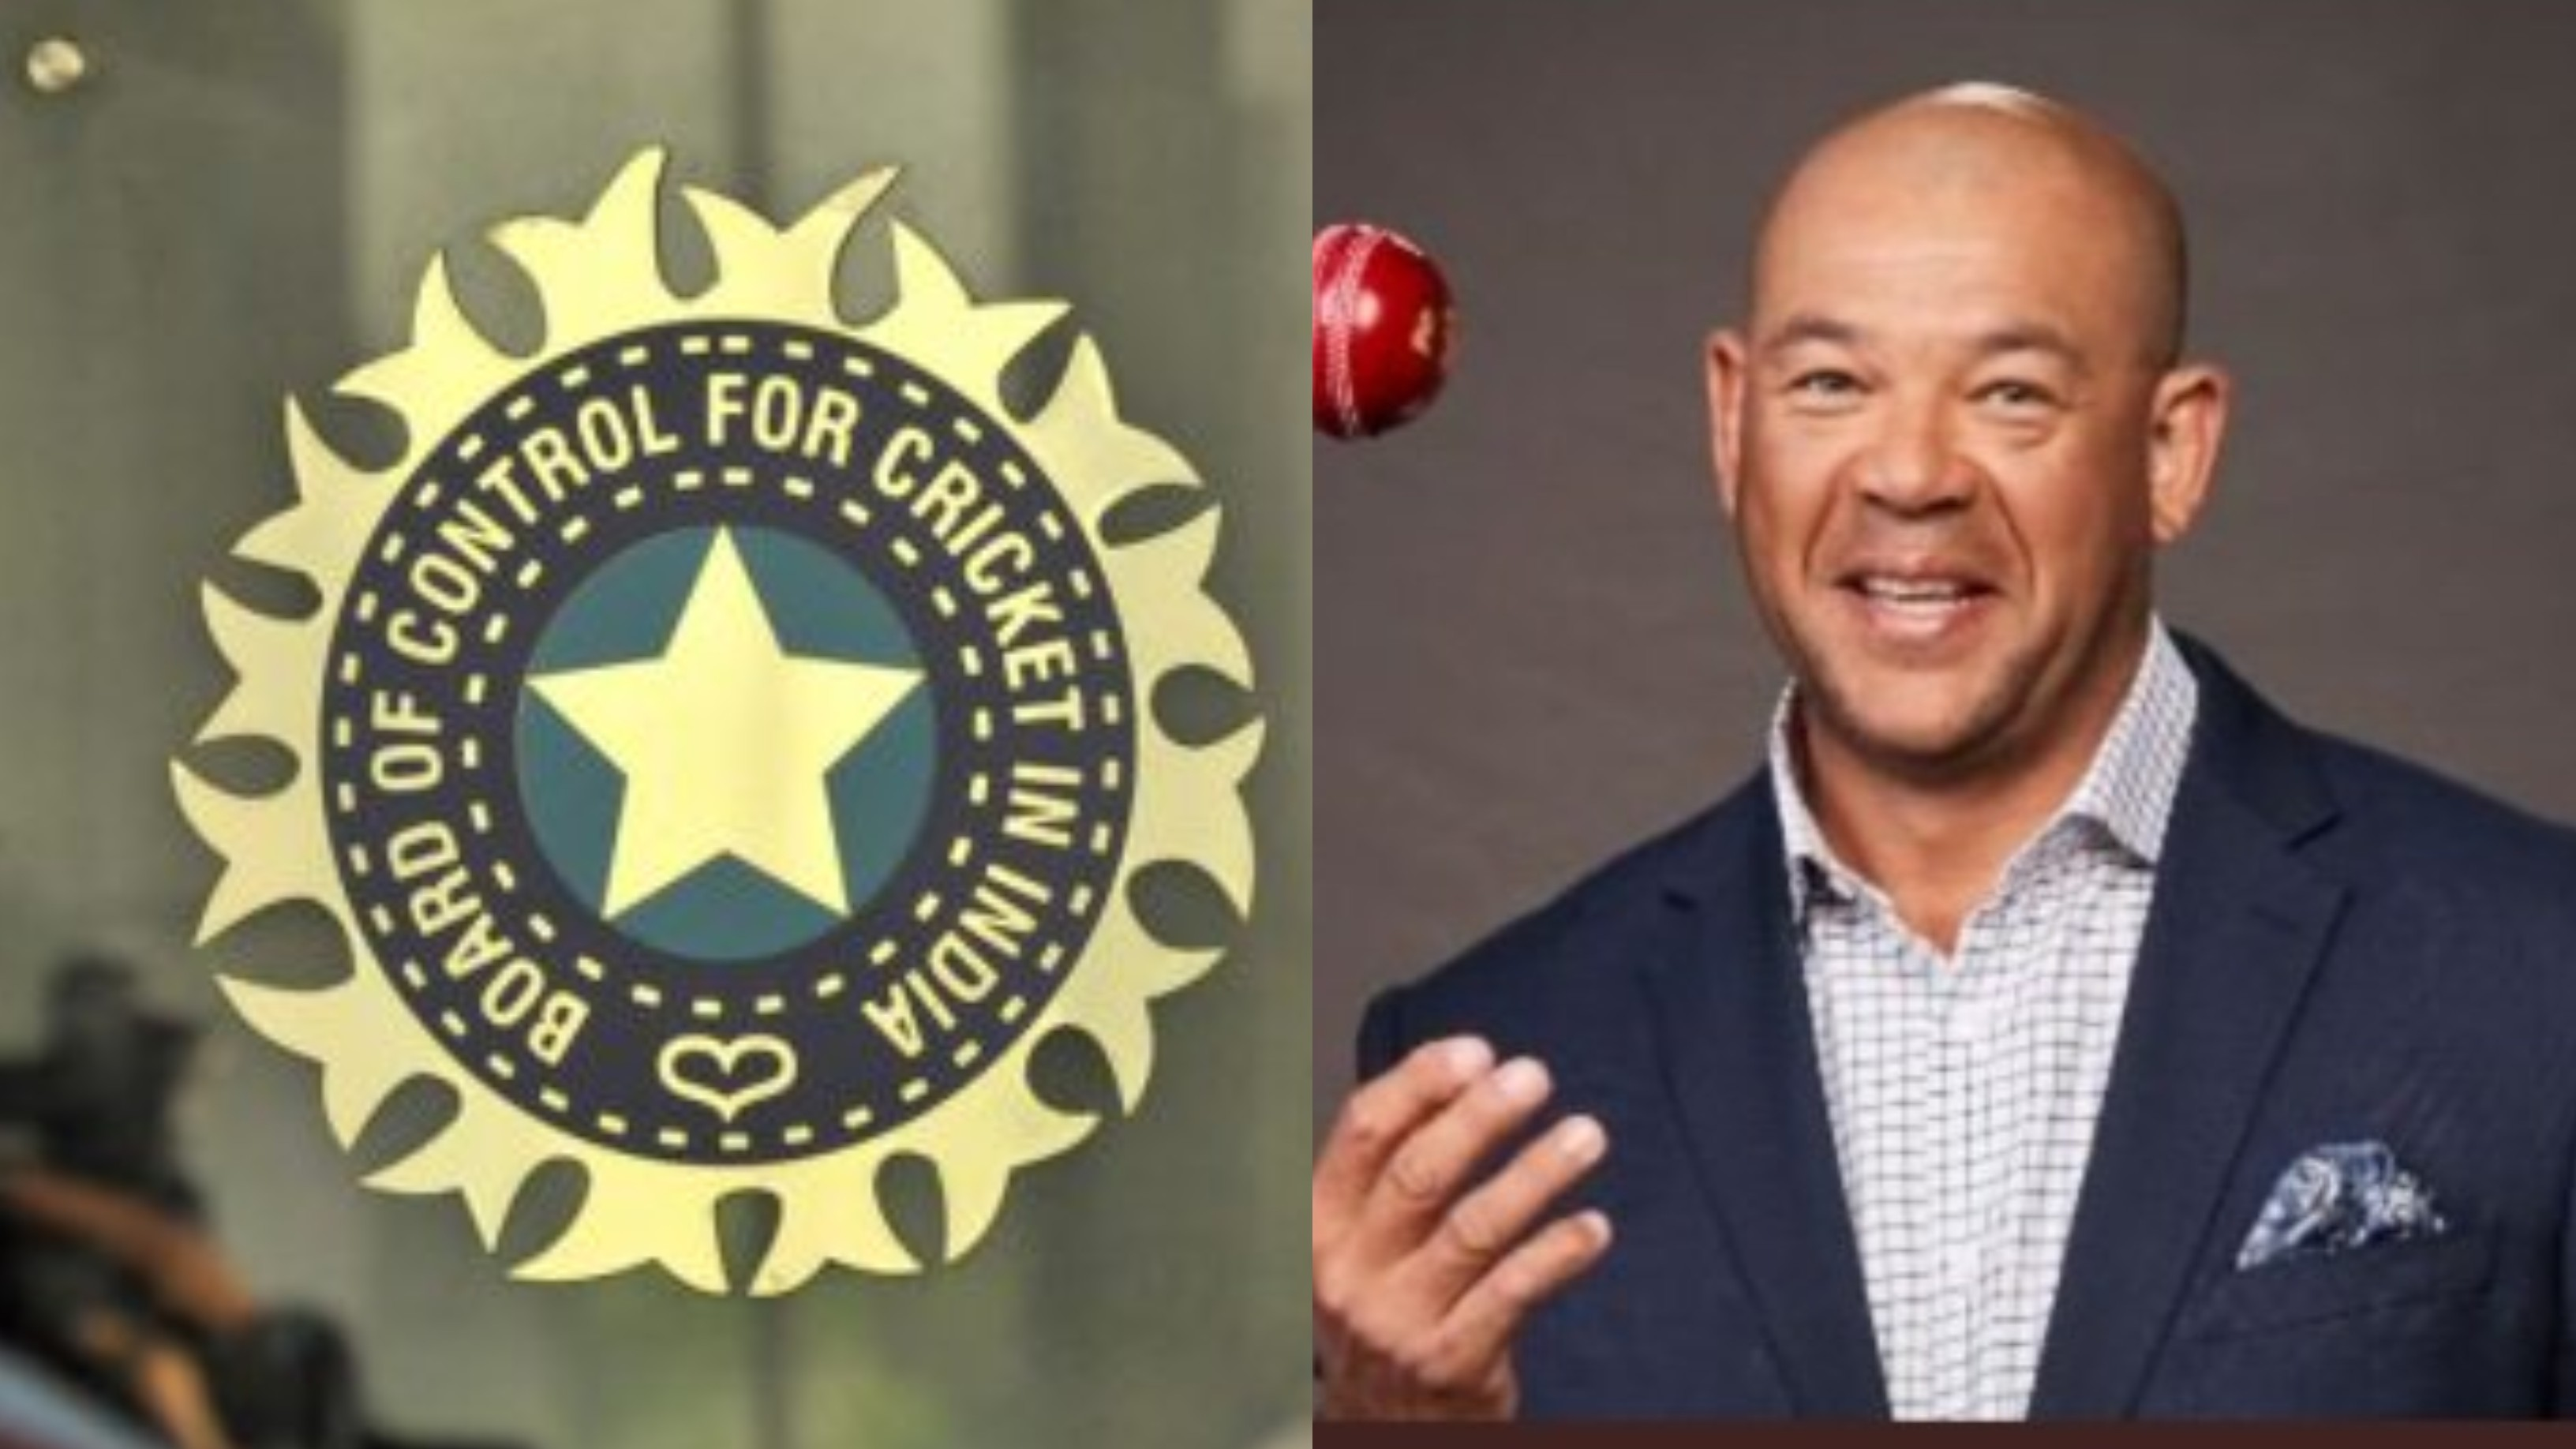 AUS v IND 2020-21: BCCI's power may help India getting away with not playing in Brisbane, says Andrew Symonds